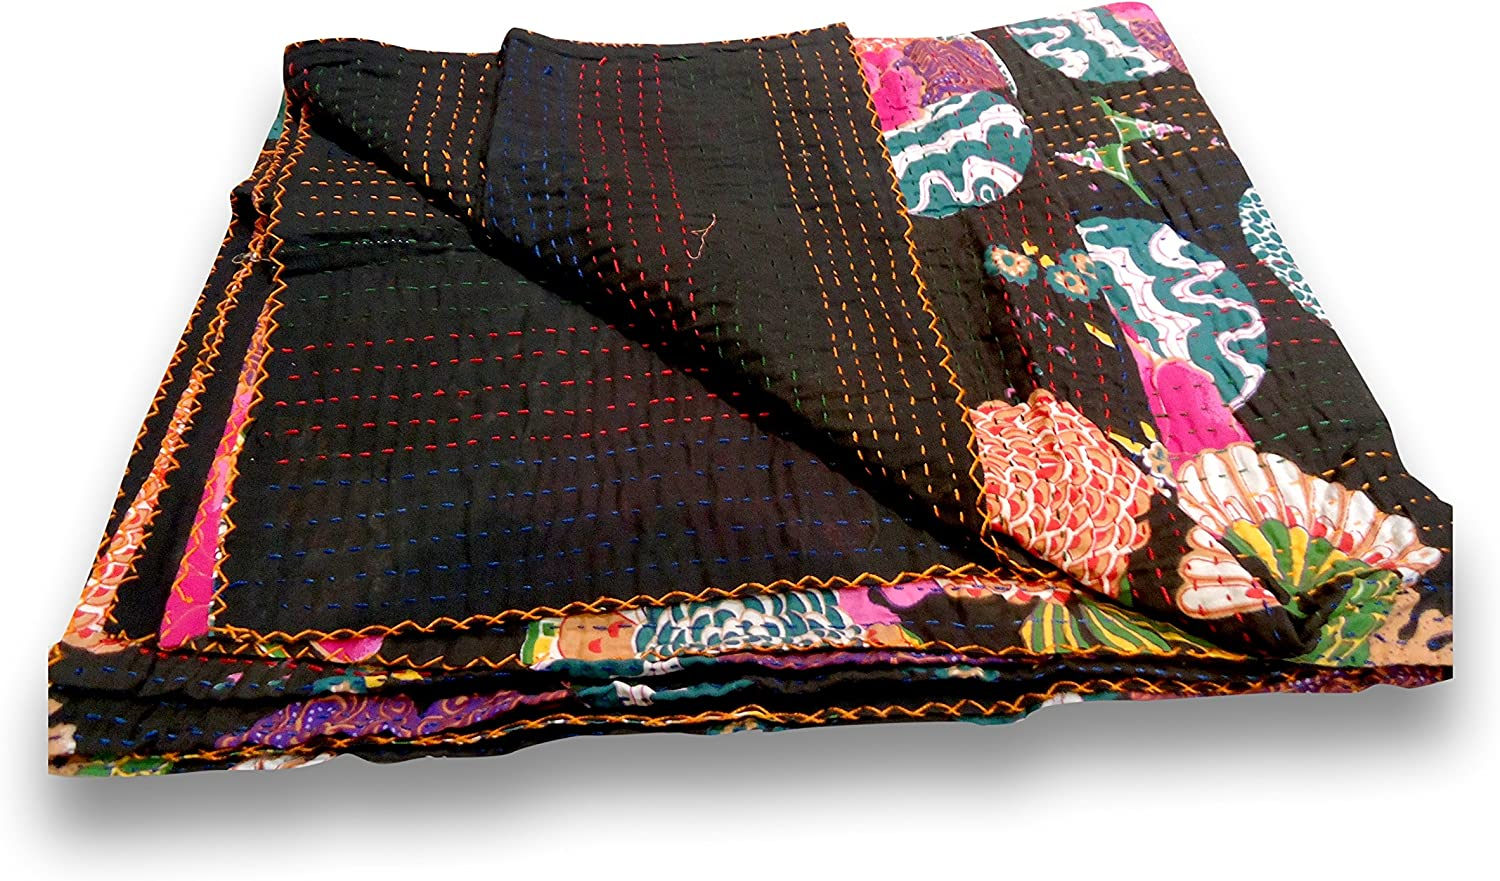 Sophia-Art Twin/King Indian Fruit Reversible Bedspread Pattern Gudri Pure Cotton Kantha Style Quilt Floral Fruit Print Decorative Kantha Stitch Quilt (Black, King 90108 Inches)